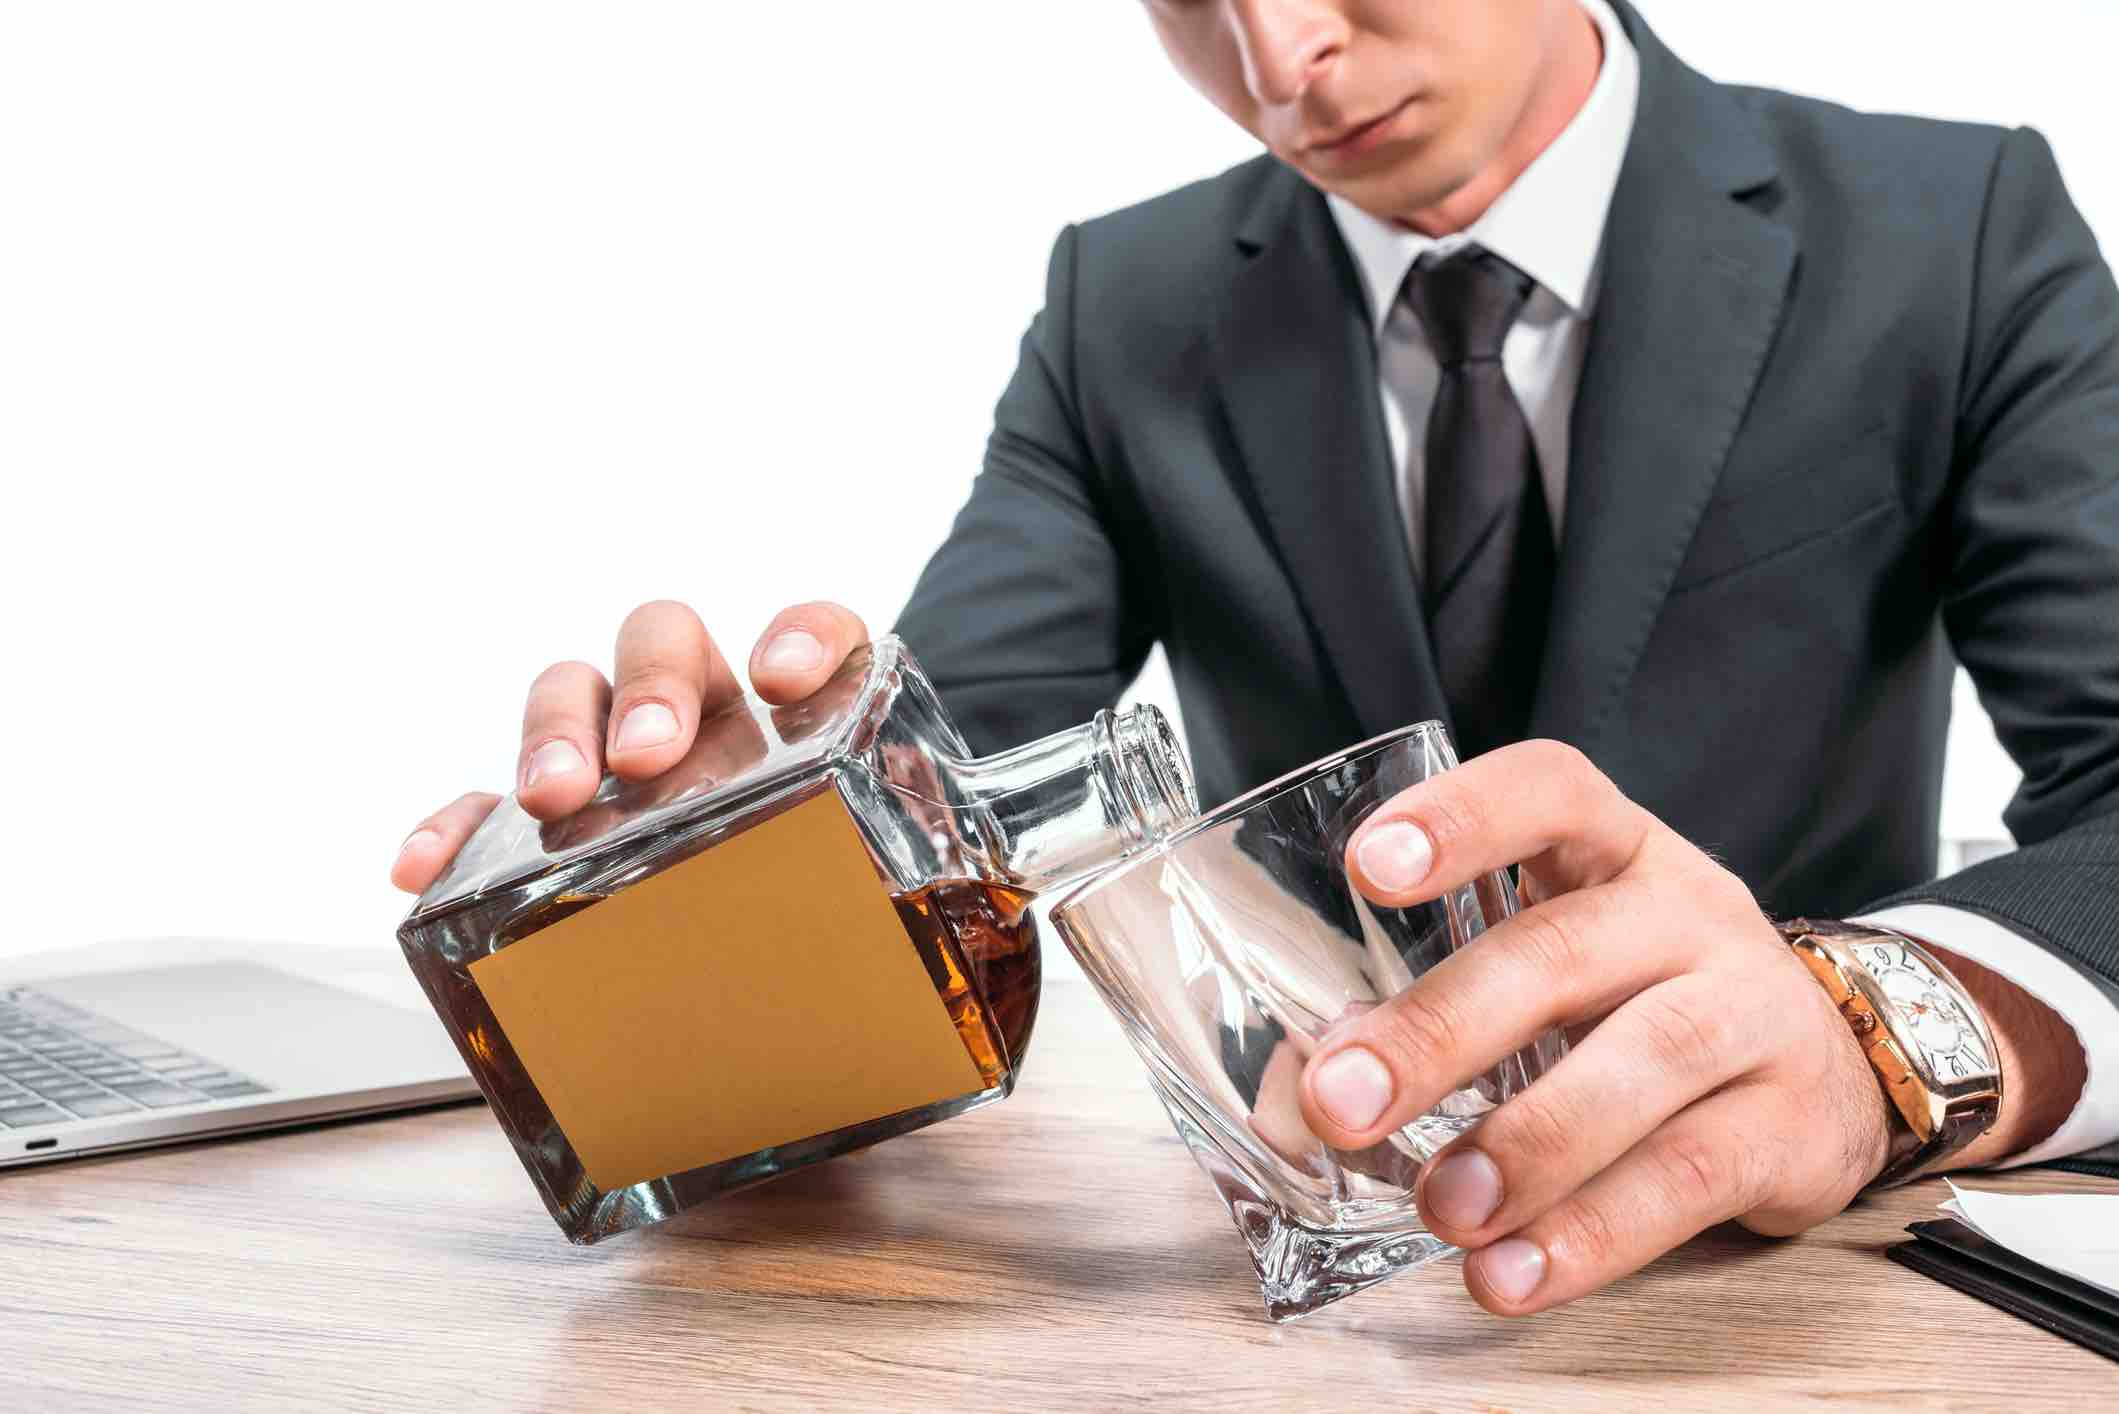 What Do I Do If My Boss is a Functional Alcoholic?